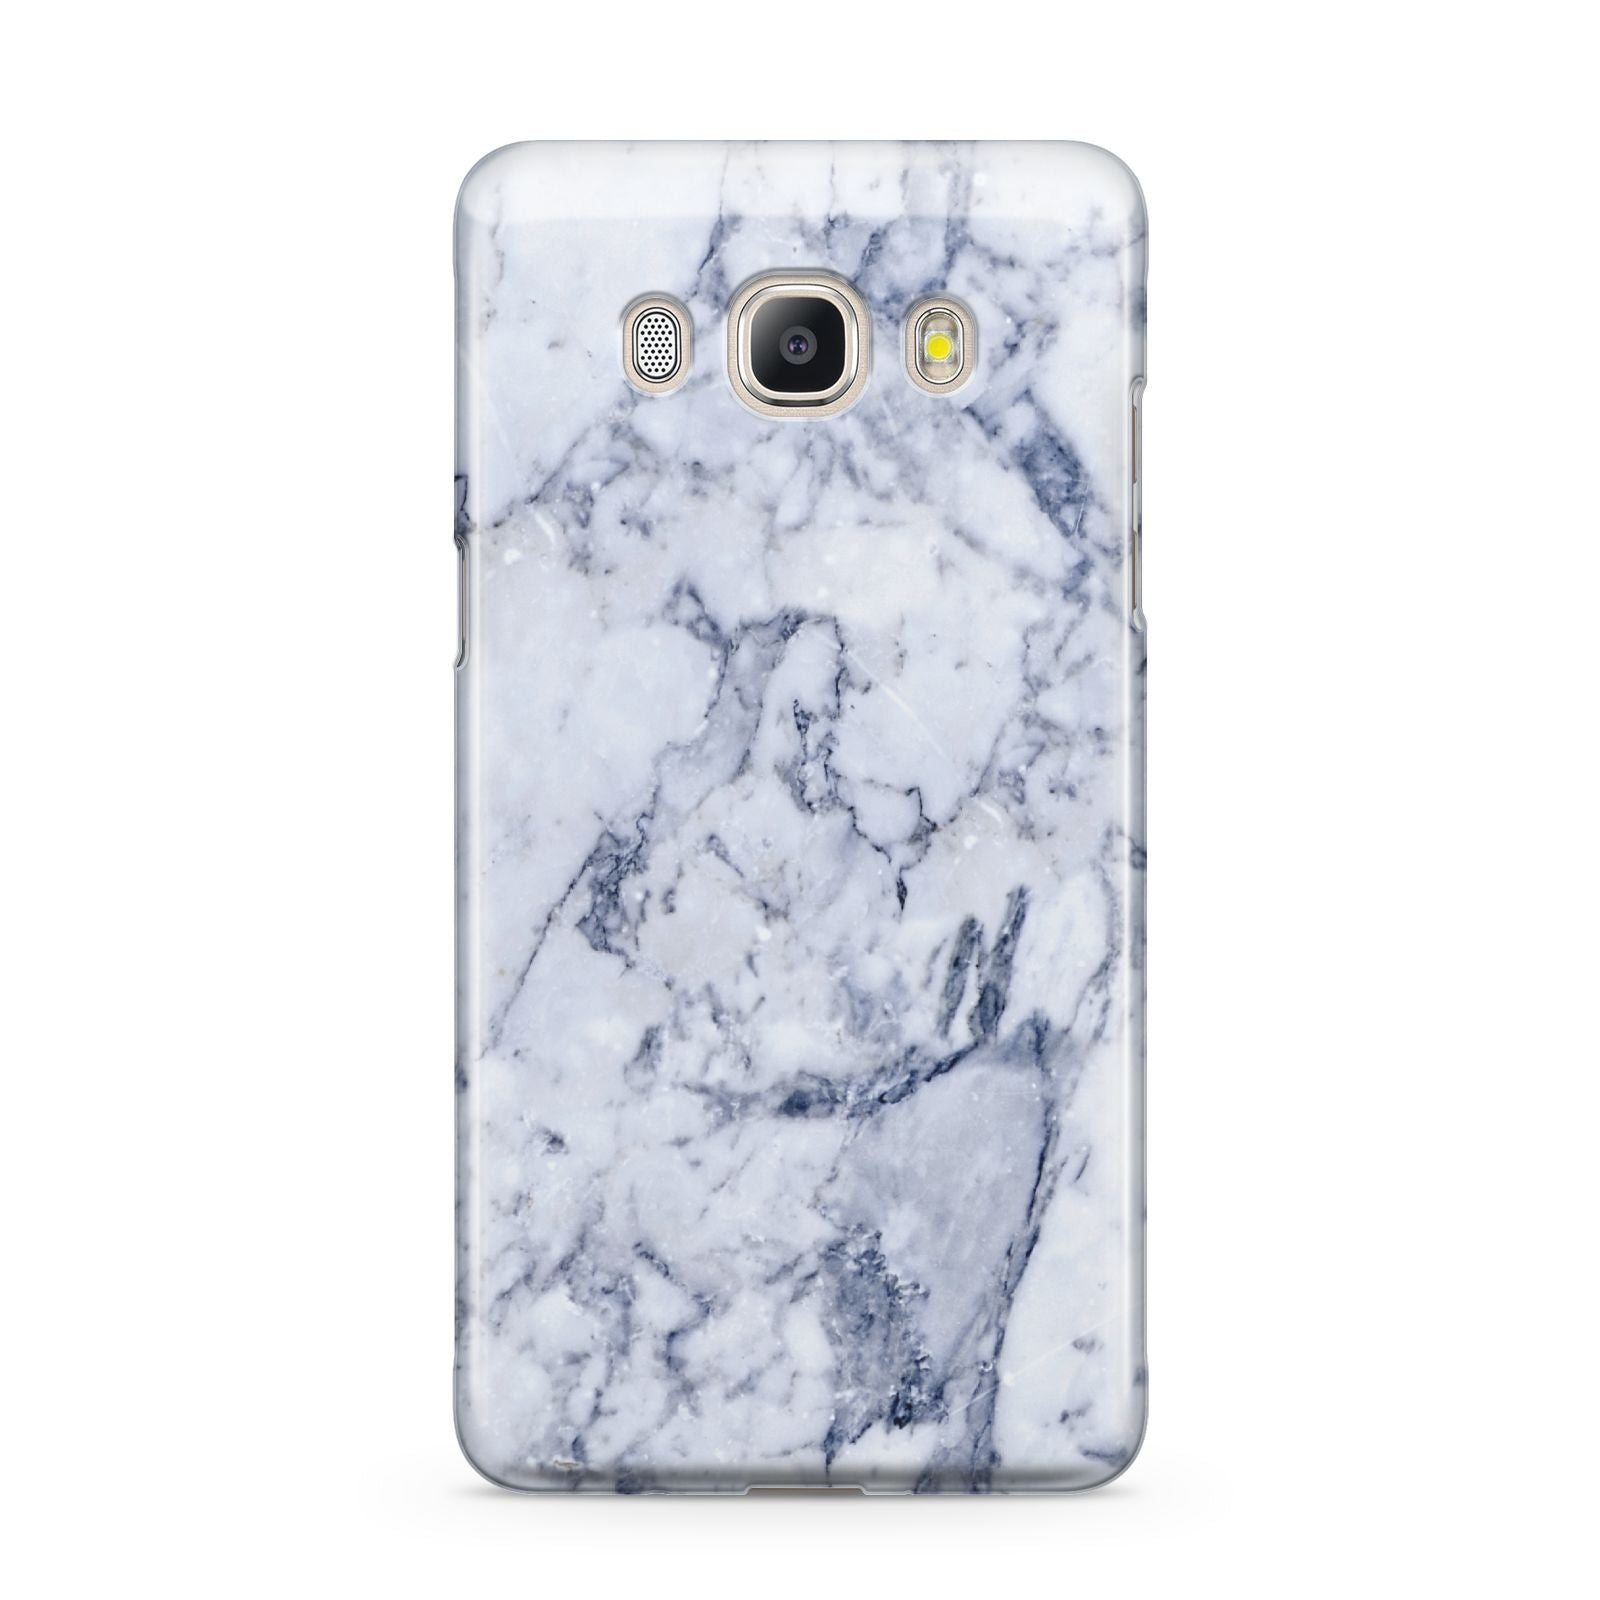 Faux Marble Blue Grey White Samsung Galaxy J5 2016 Case